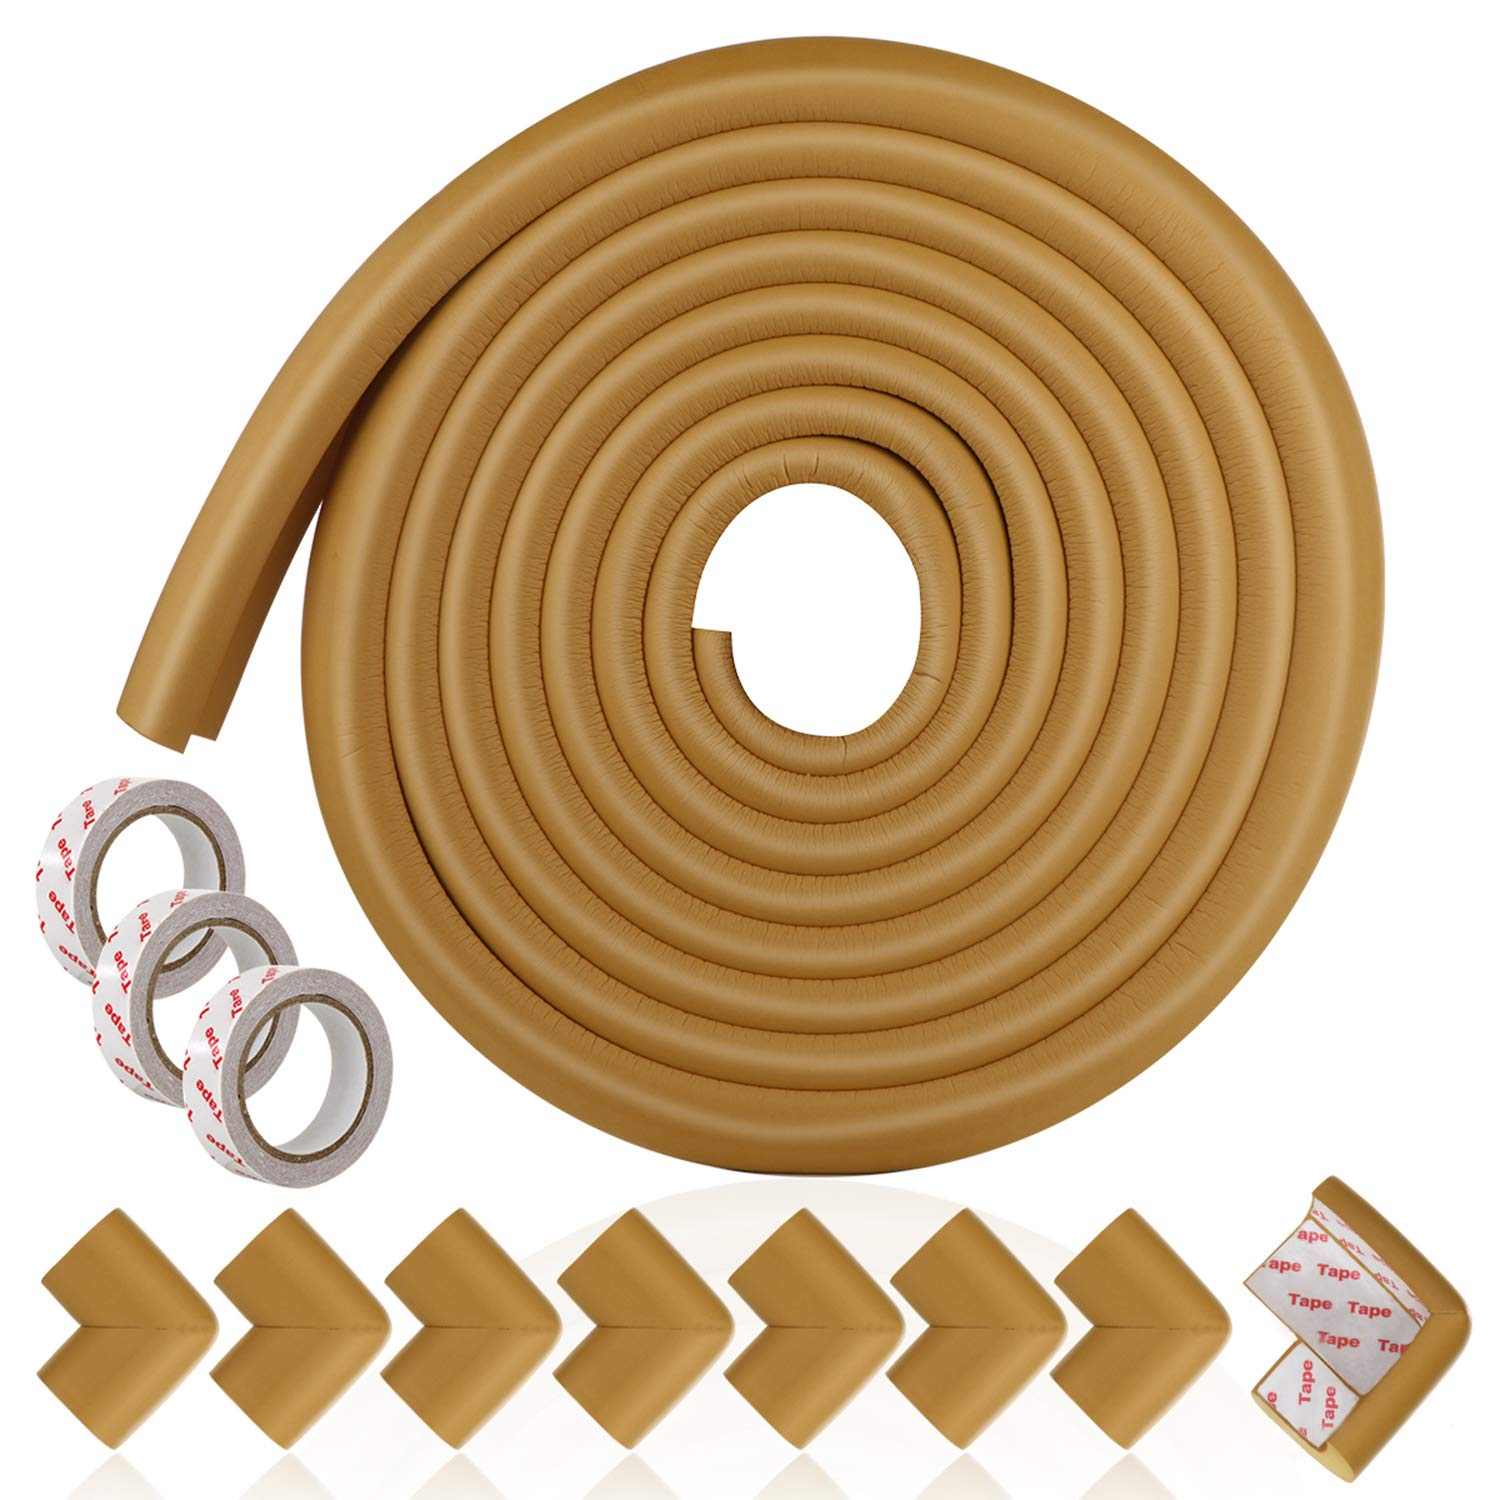 Baby Proofing Edge and Corner Guard Set, 16foot Furniture Side Bumpers and Foam Cushion with Adhesive Tapes, Safety Corner Protectors for Fireplace, Table, Countertop